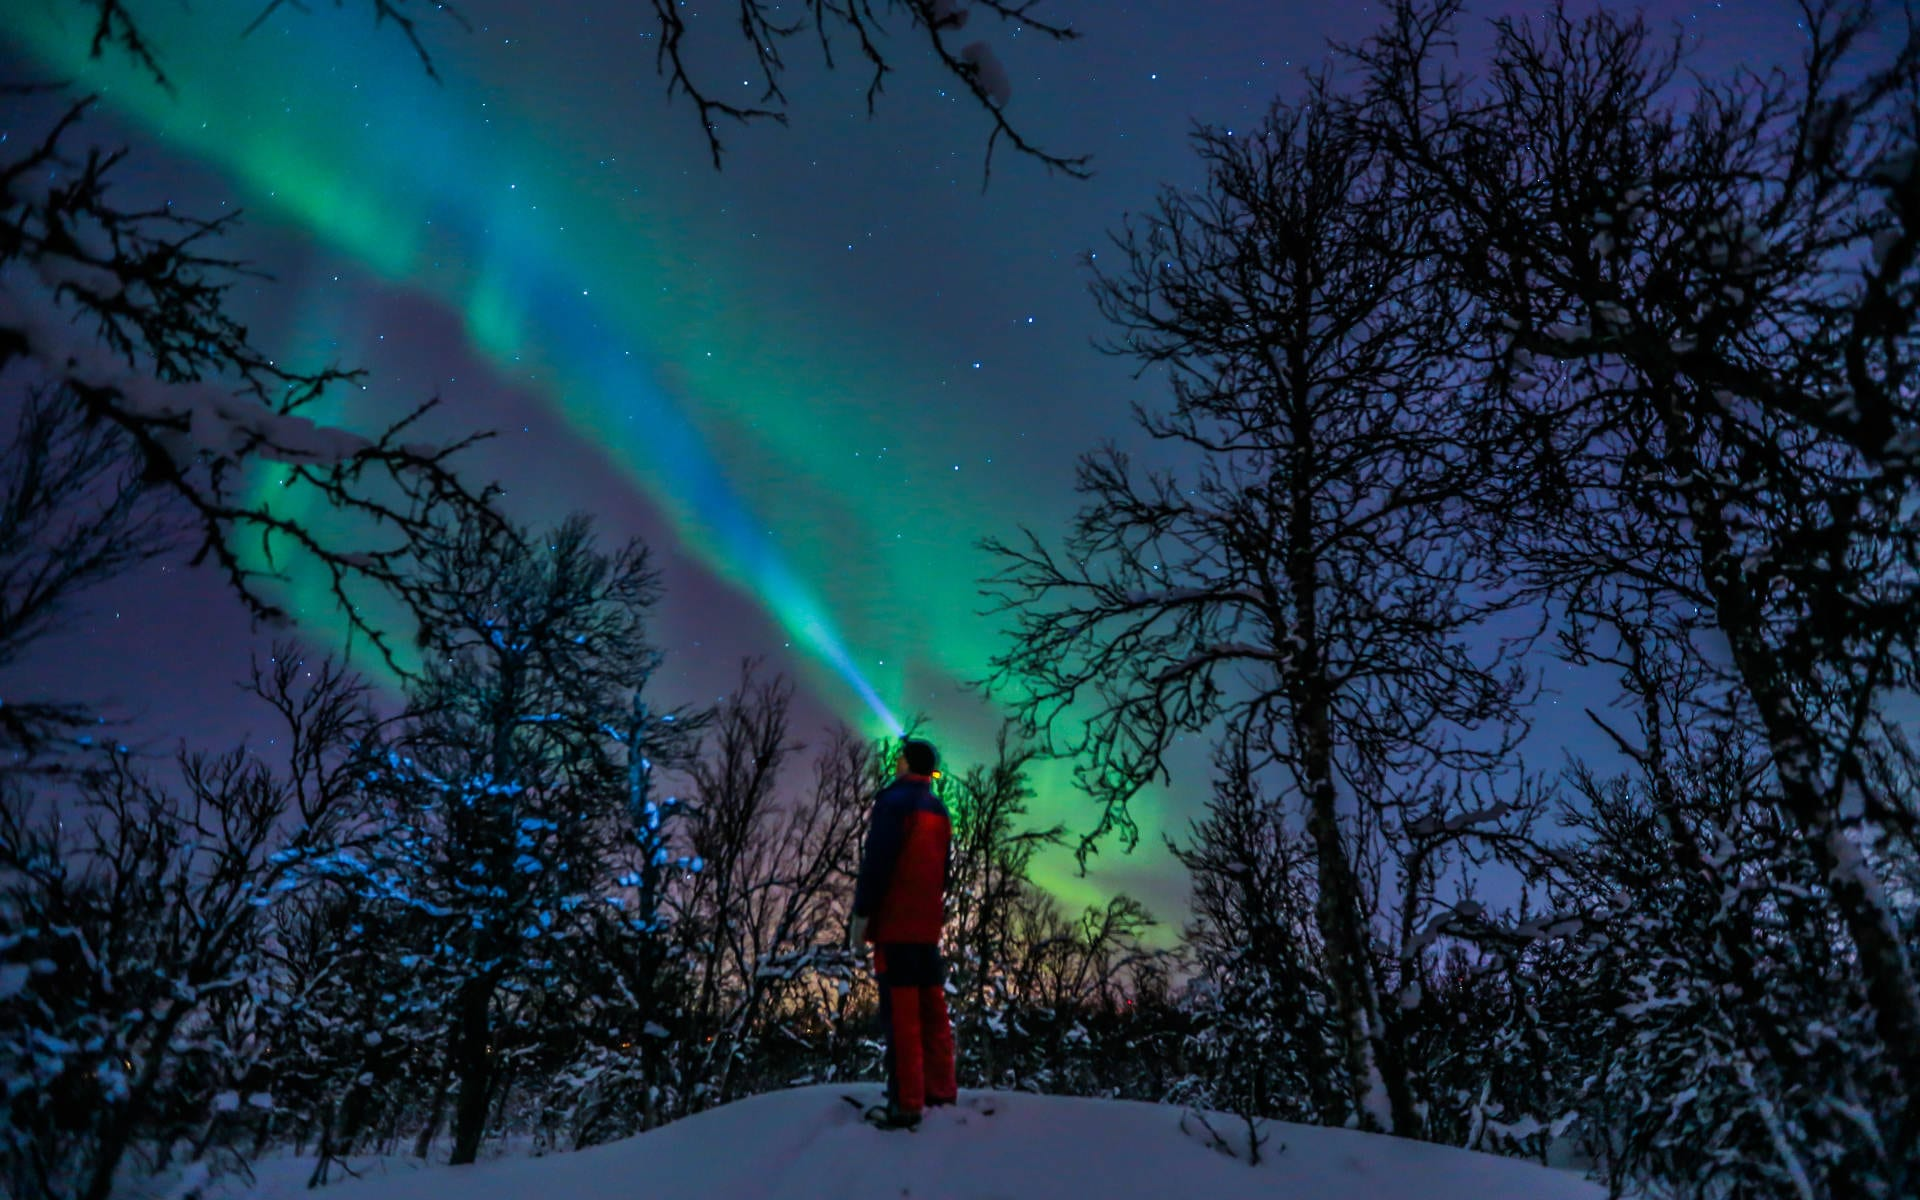 Northern lights and tree view